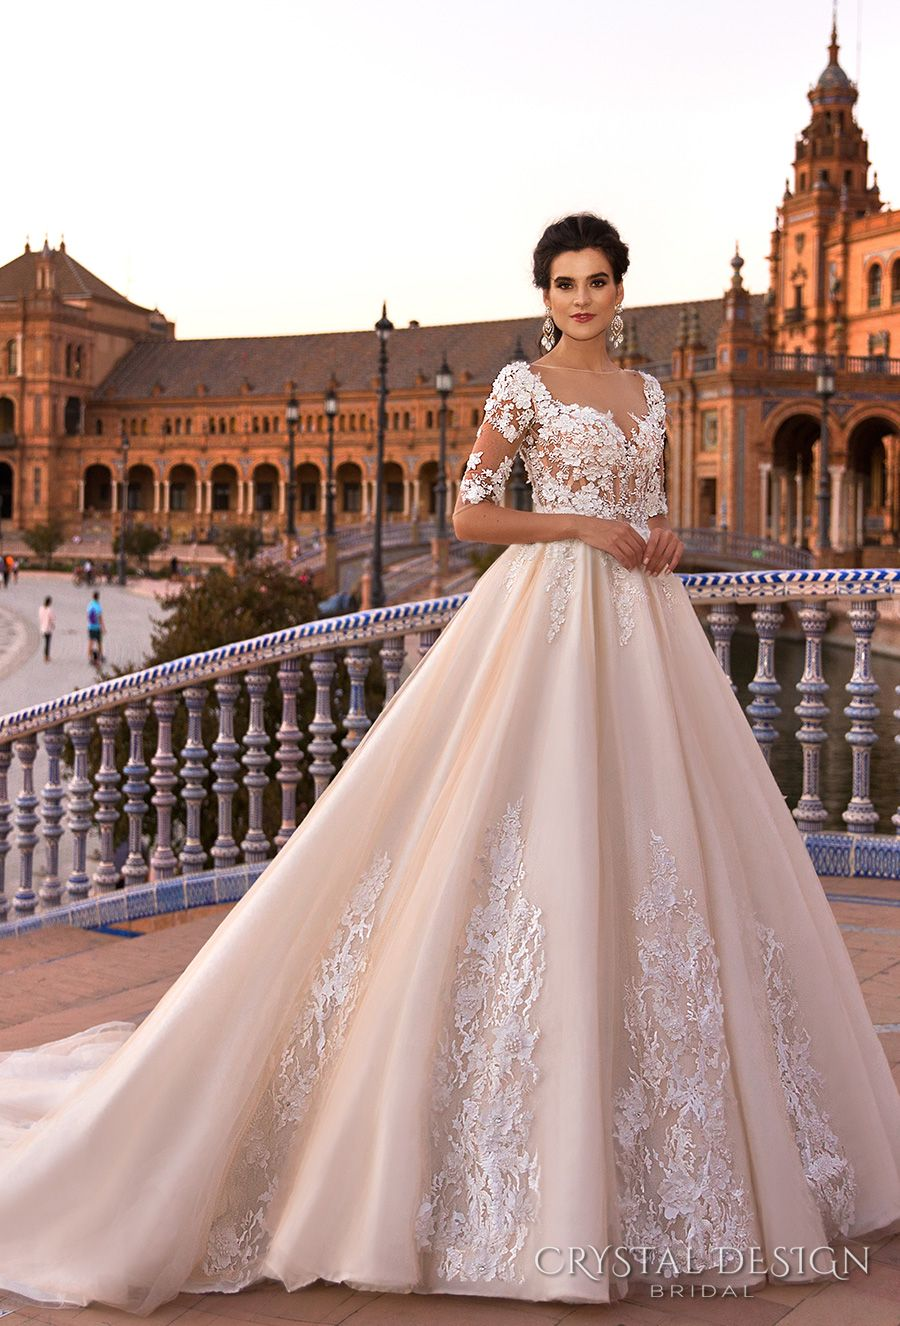 White dress design 2017 - Beautiful Wedding Dresses From The 2017 Crystal Design Collection Sevilla Bridal Campaign